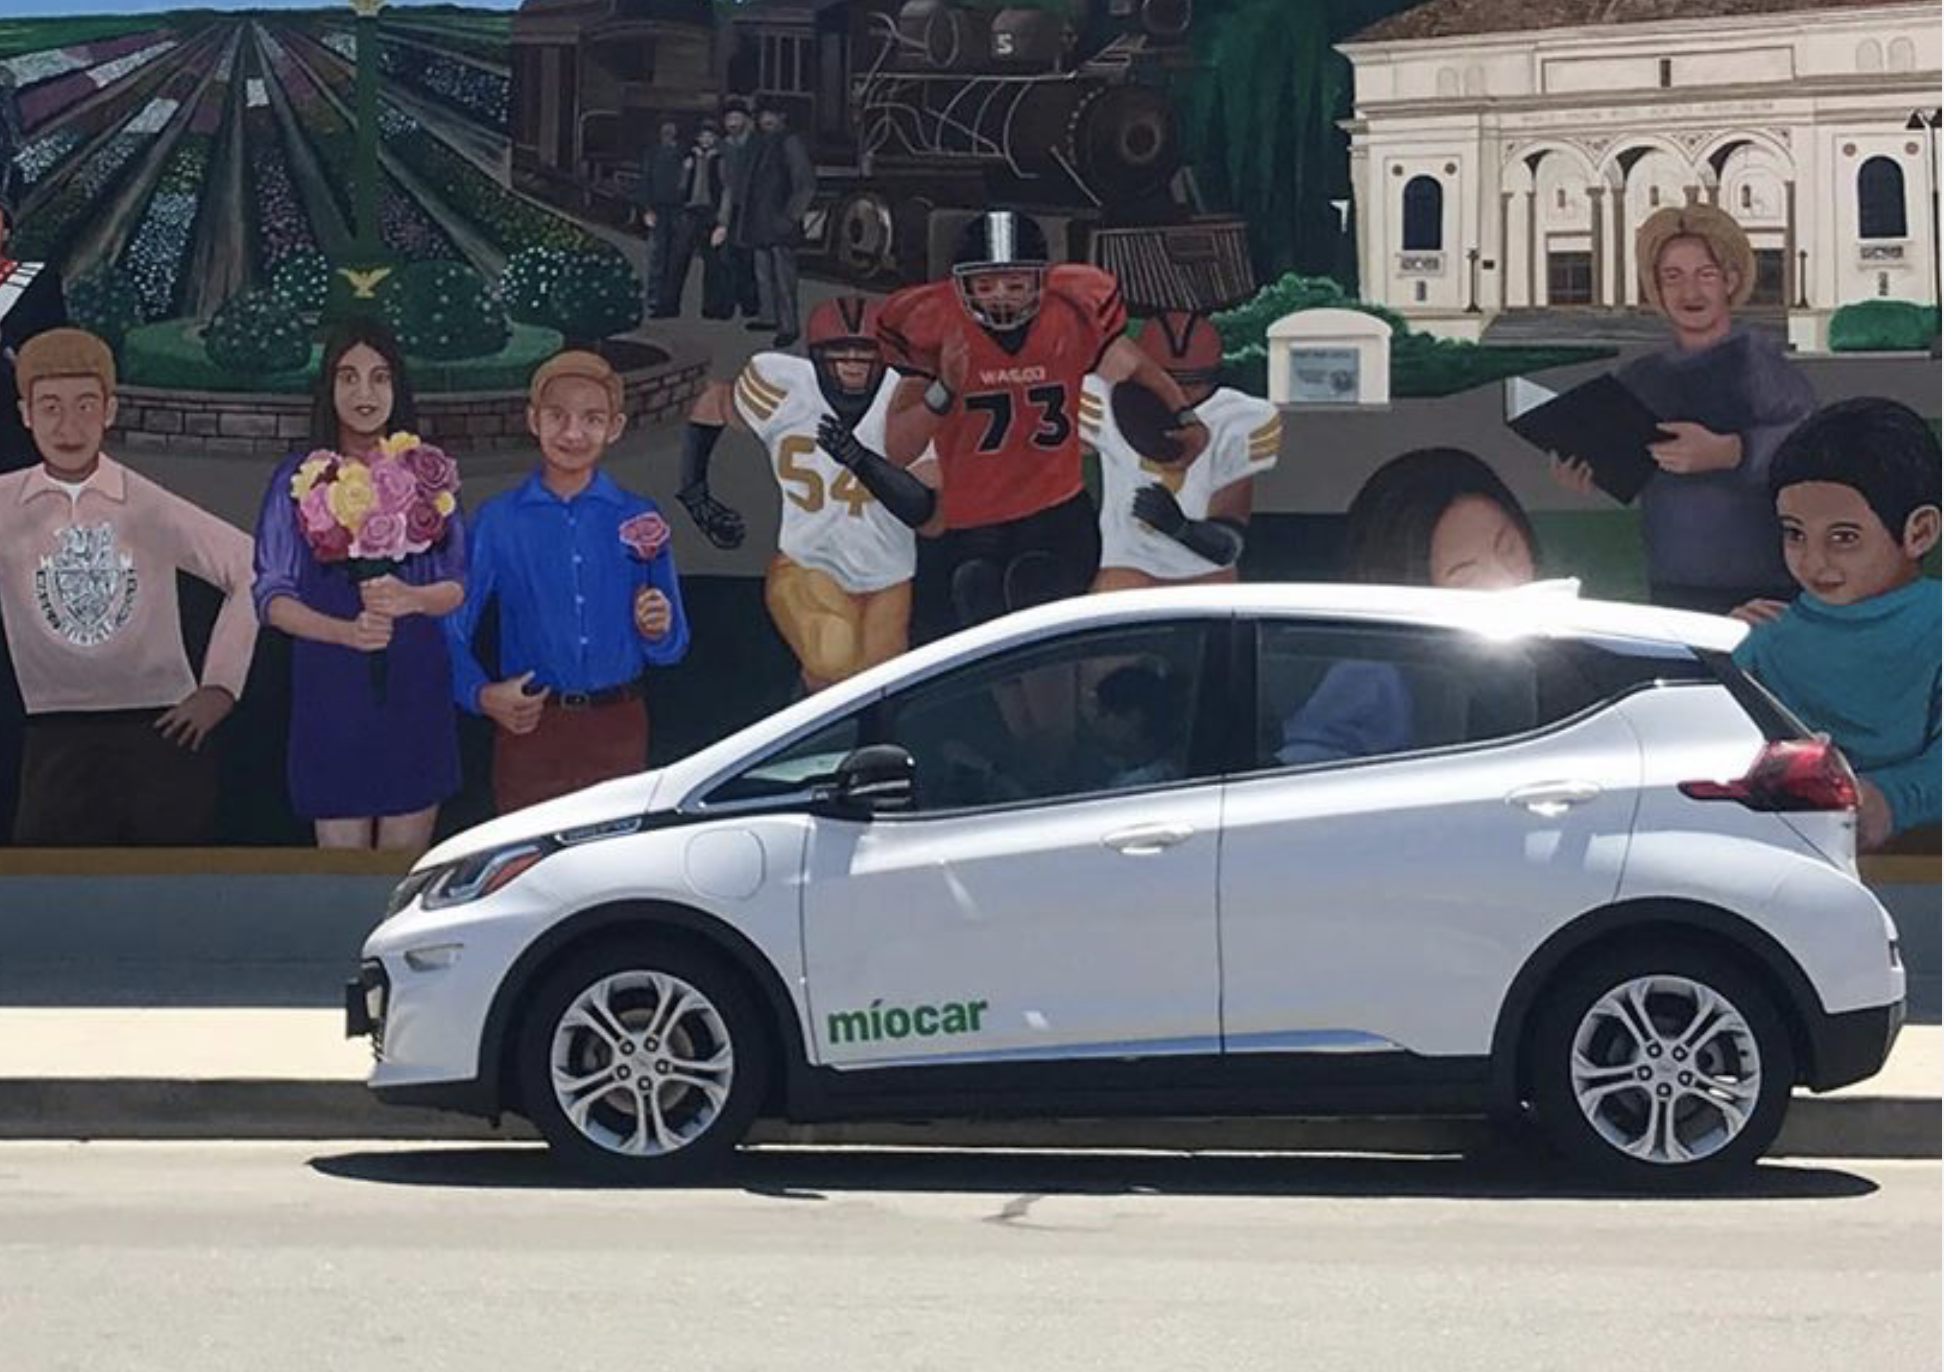 Miocar parks in front of mural in Wasco